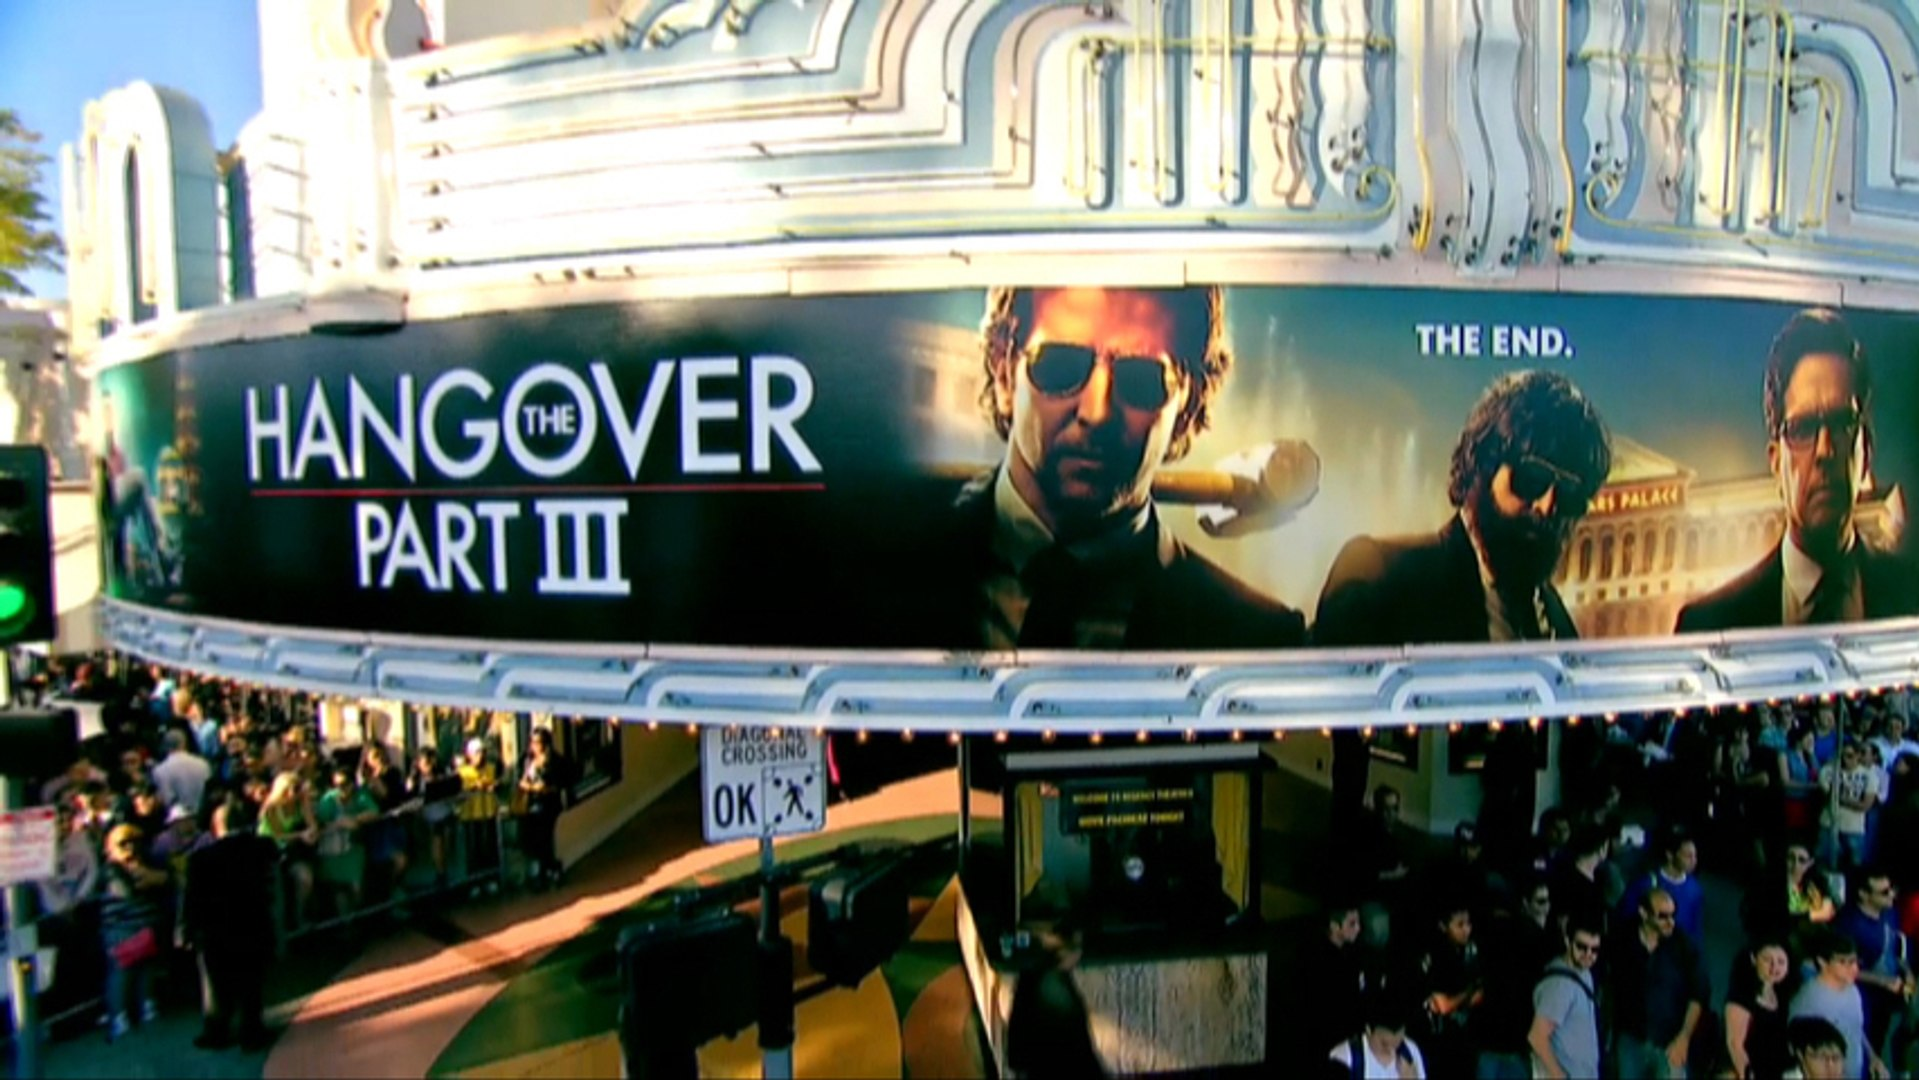 Hangover 3 Los Angeles Premiere: Full Coverage